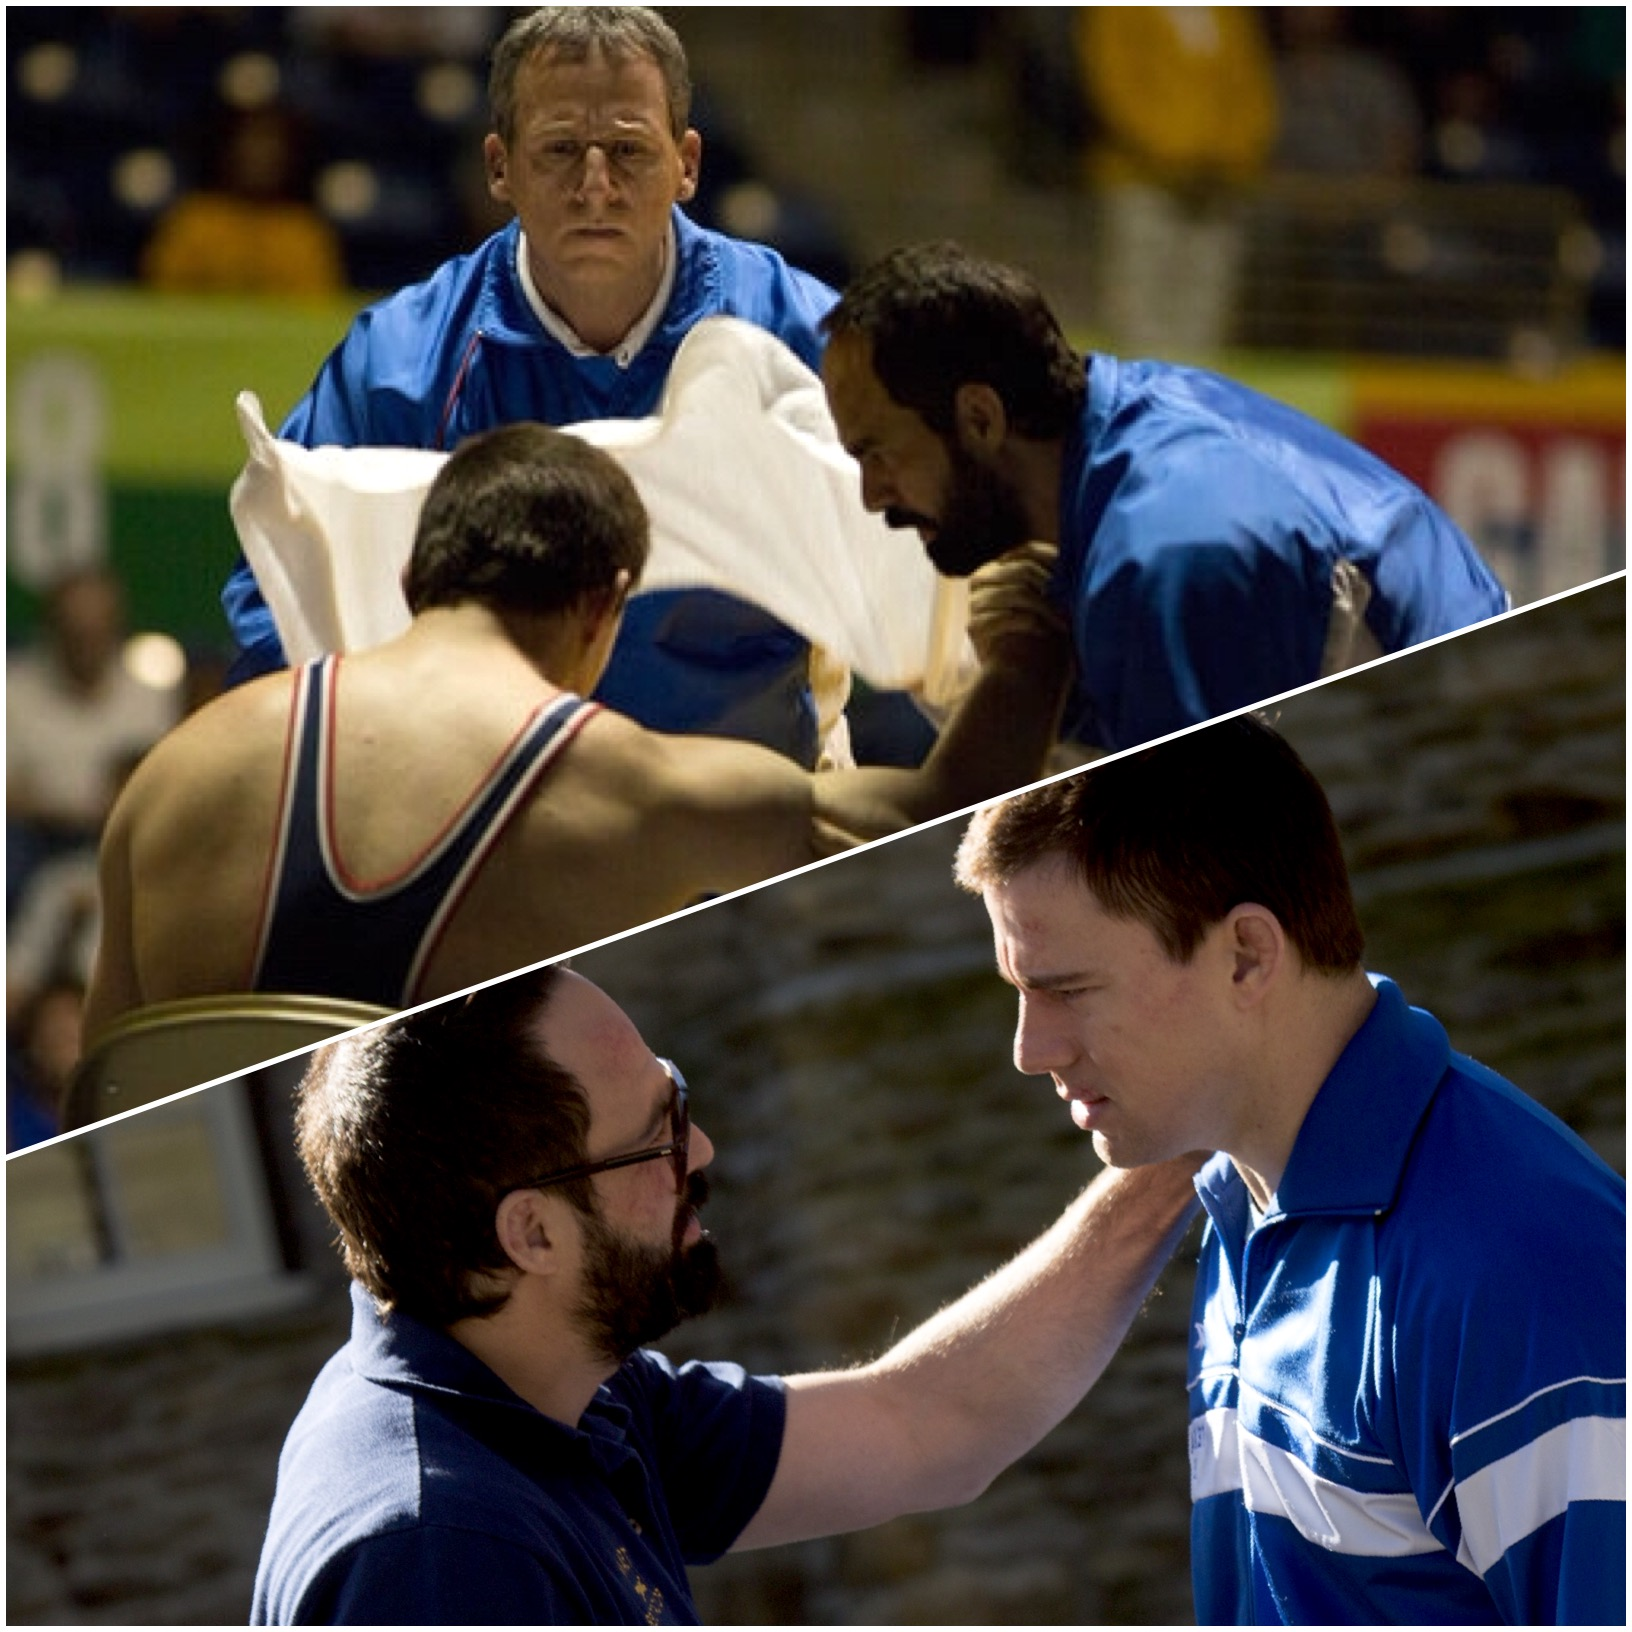 Foxcatcher - Channing Tatum